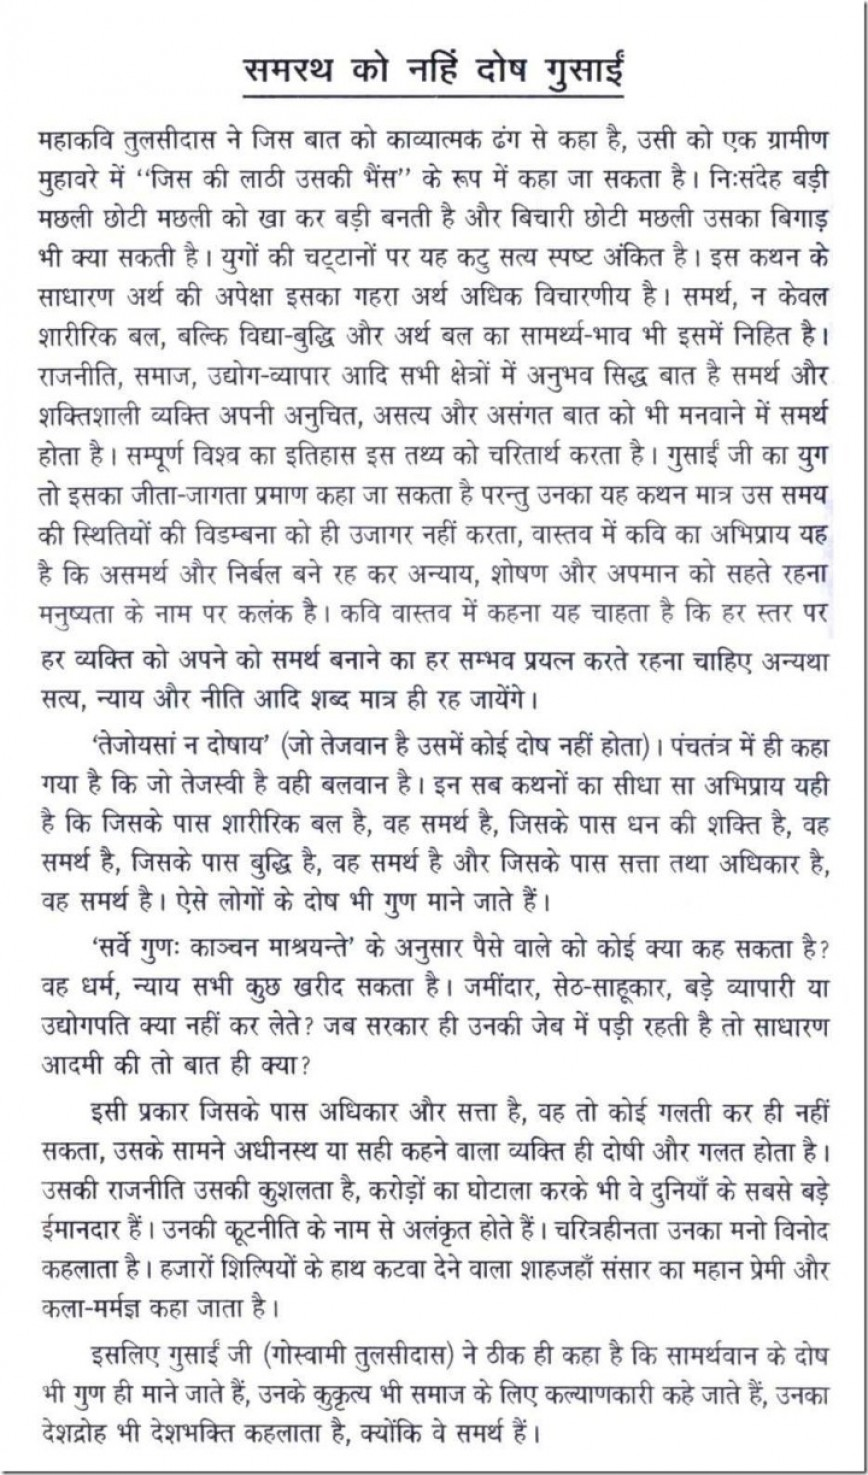 007 Good Habits Essay In Hindi Example Hh0055 Thumbresize7202c1224 Exceptional And Bad Healthy Eating 868